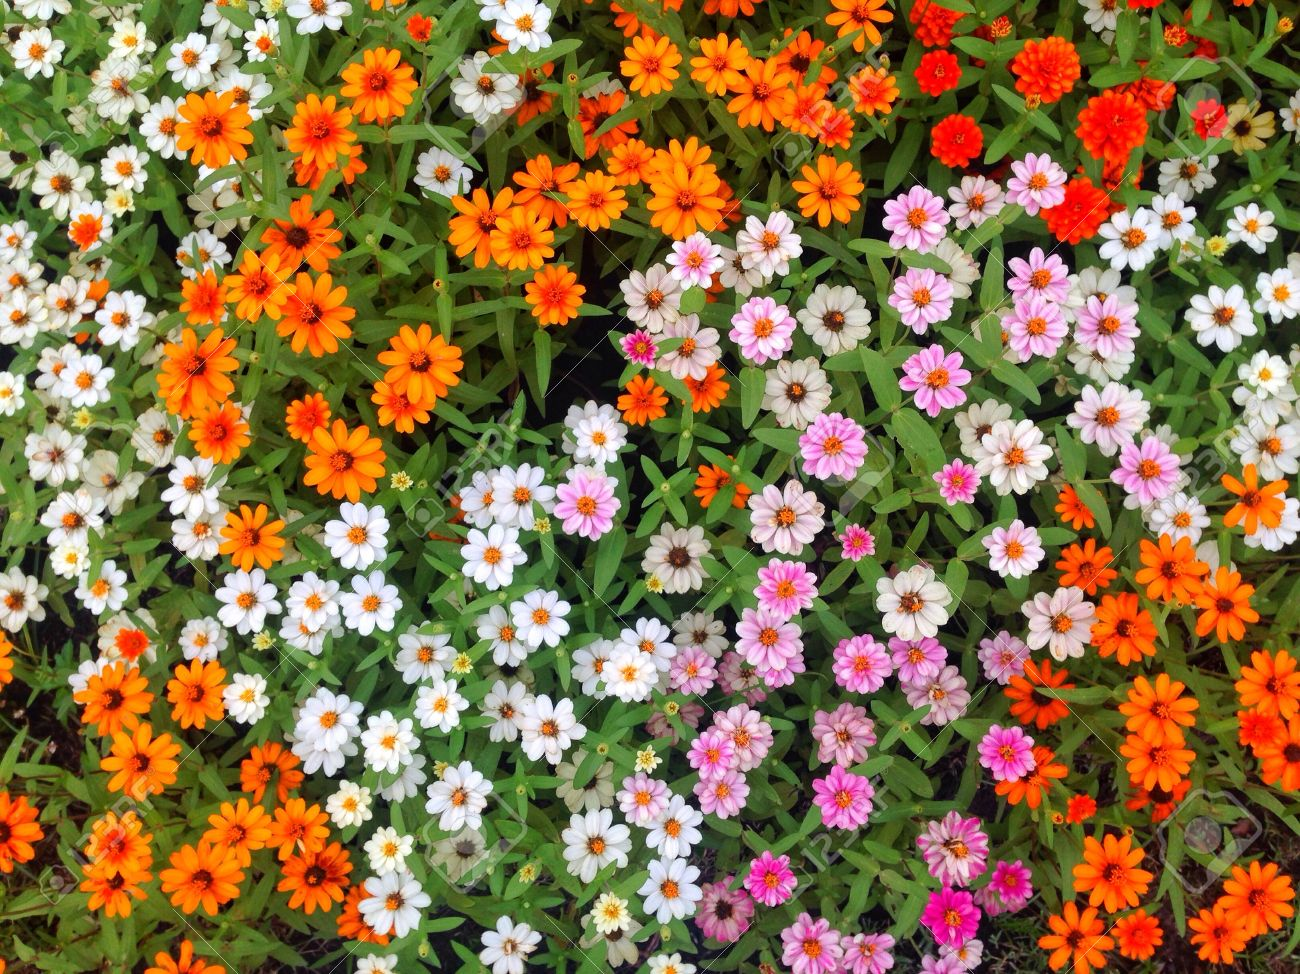 Colorful flowers in the garden topview